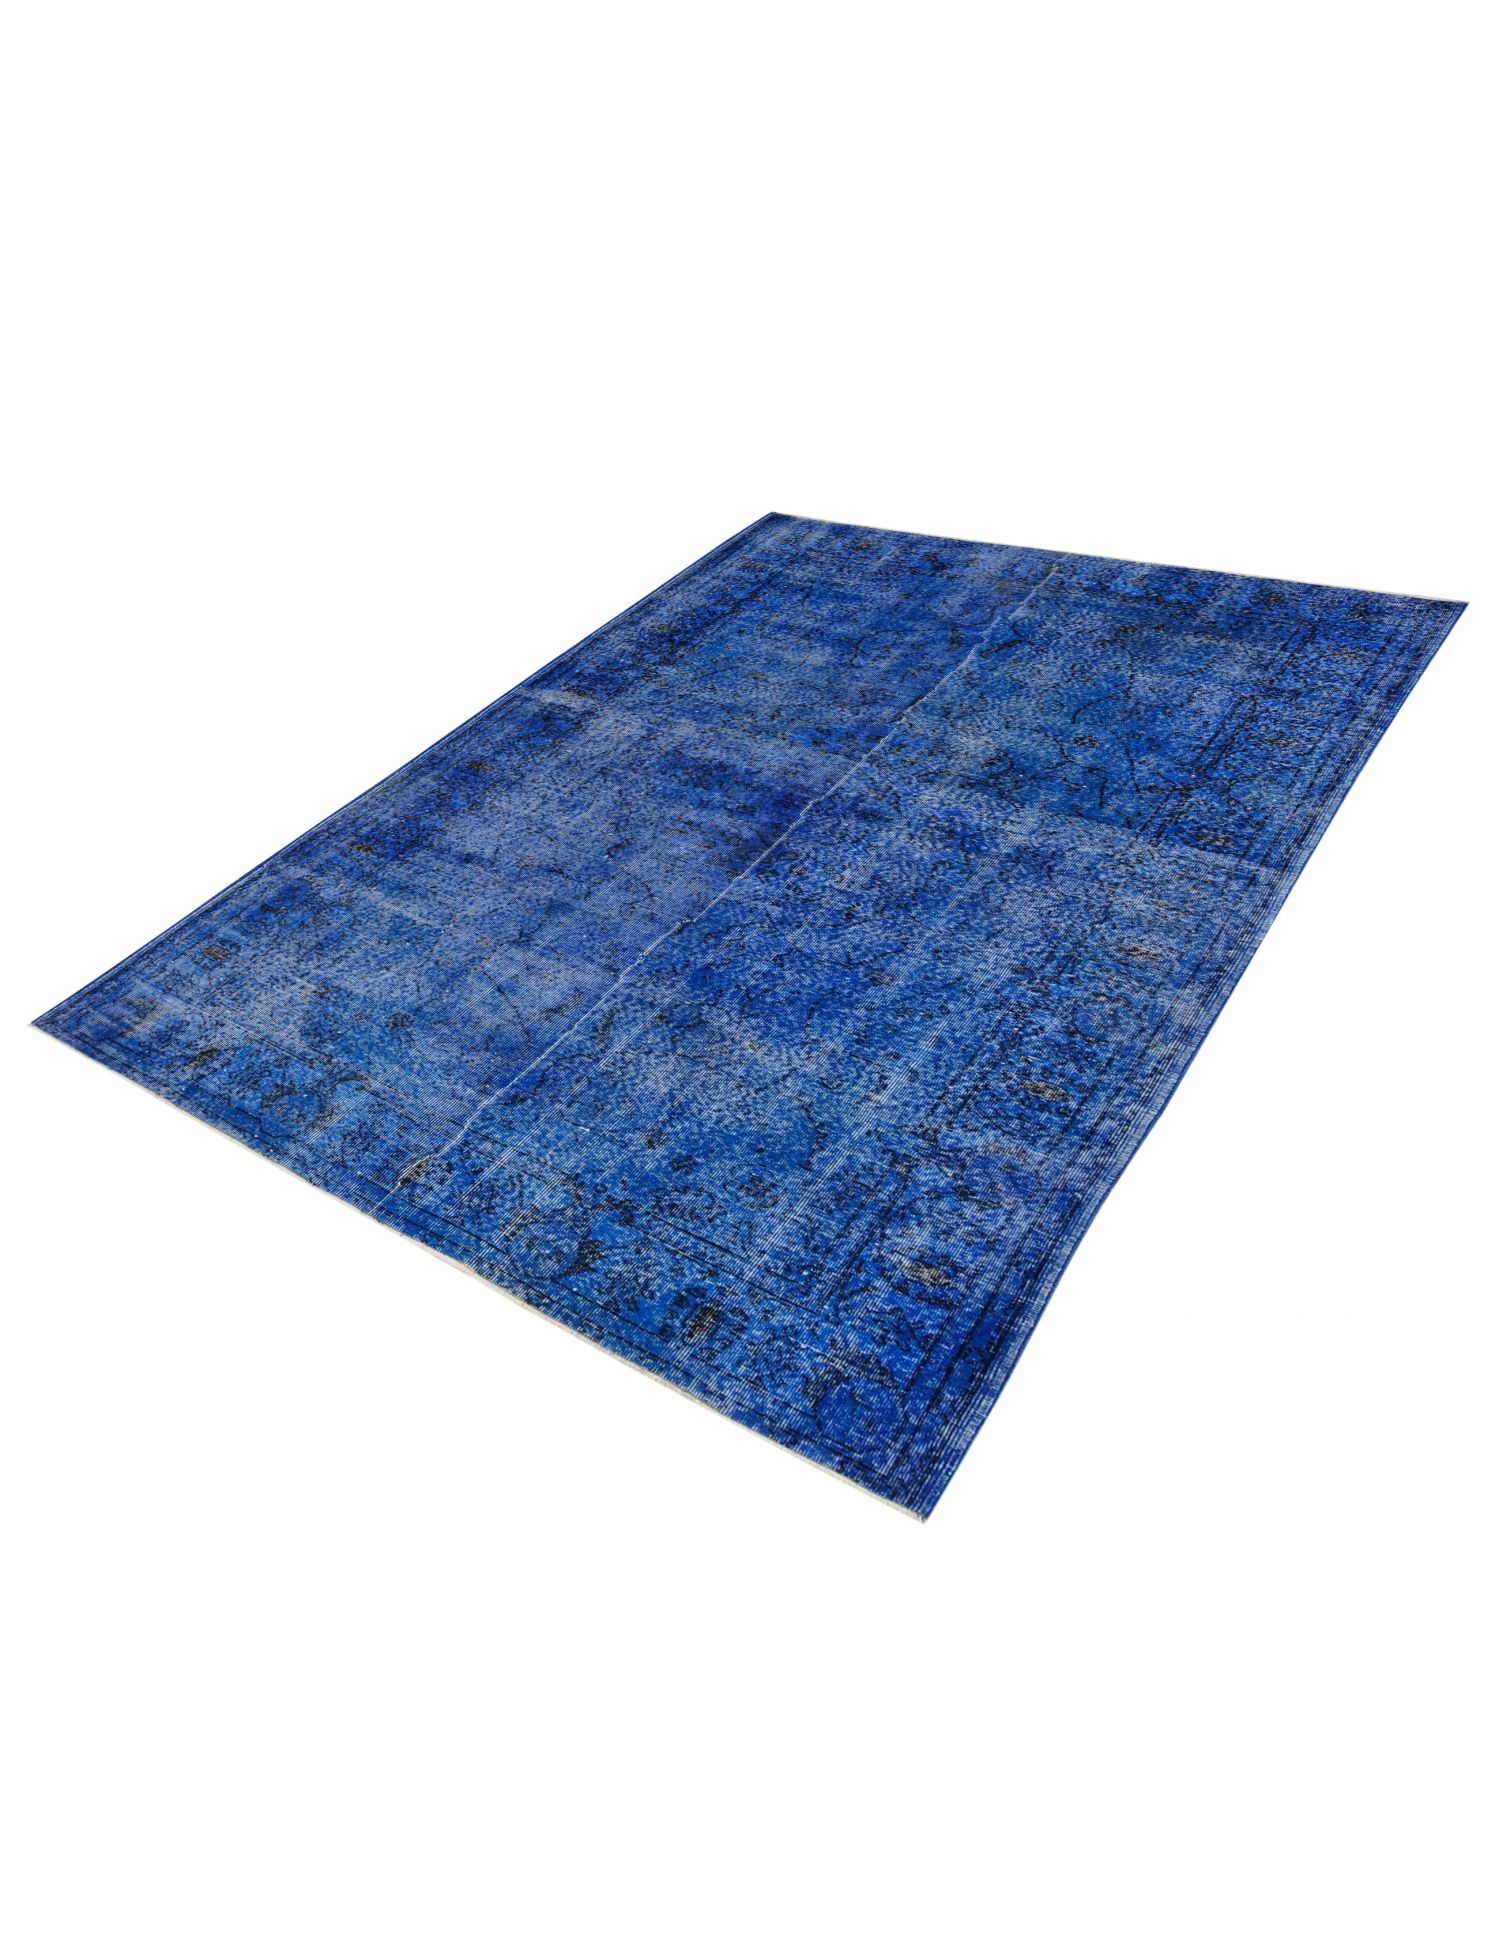 Vintage Carpet  blue <br/>287 x 189 cm